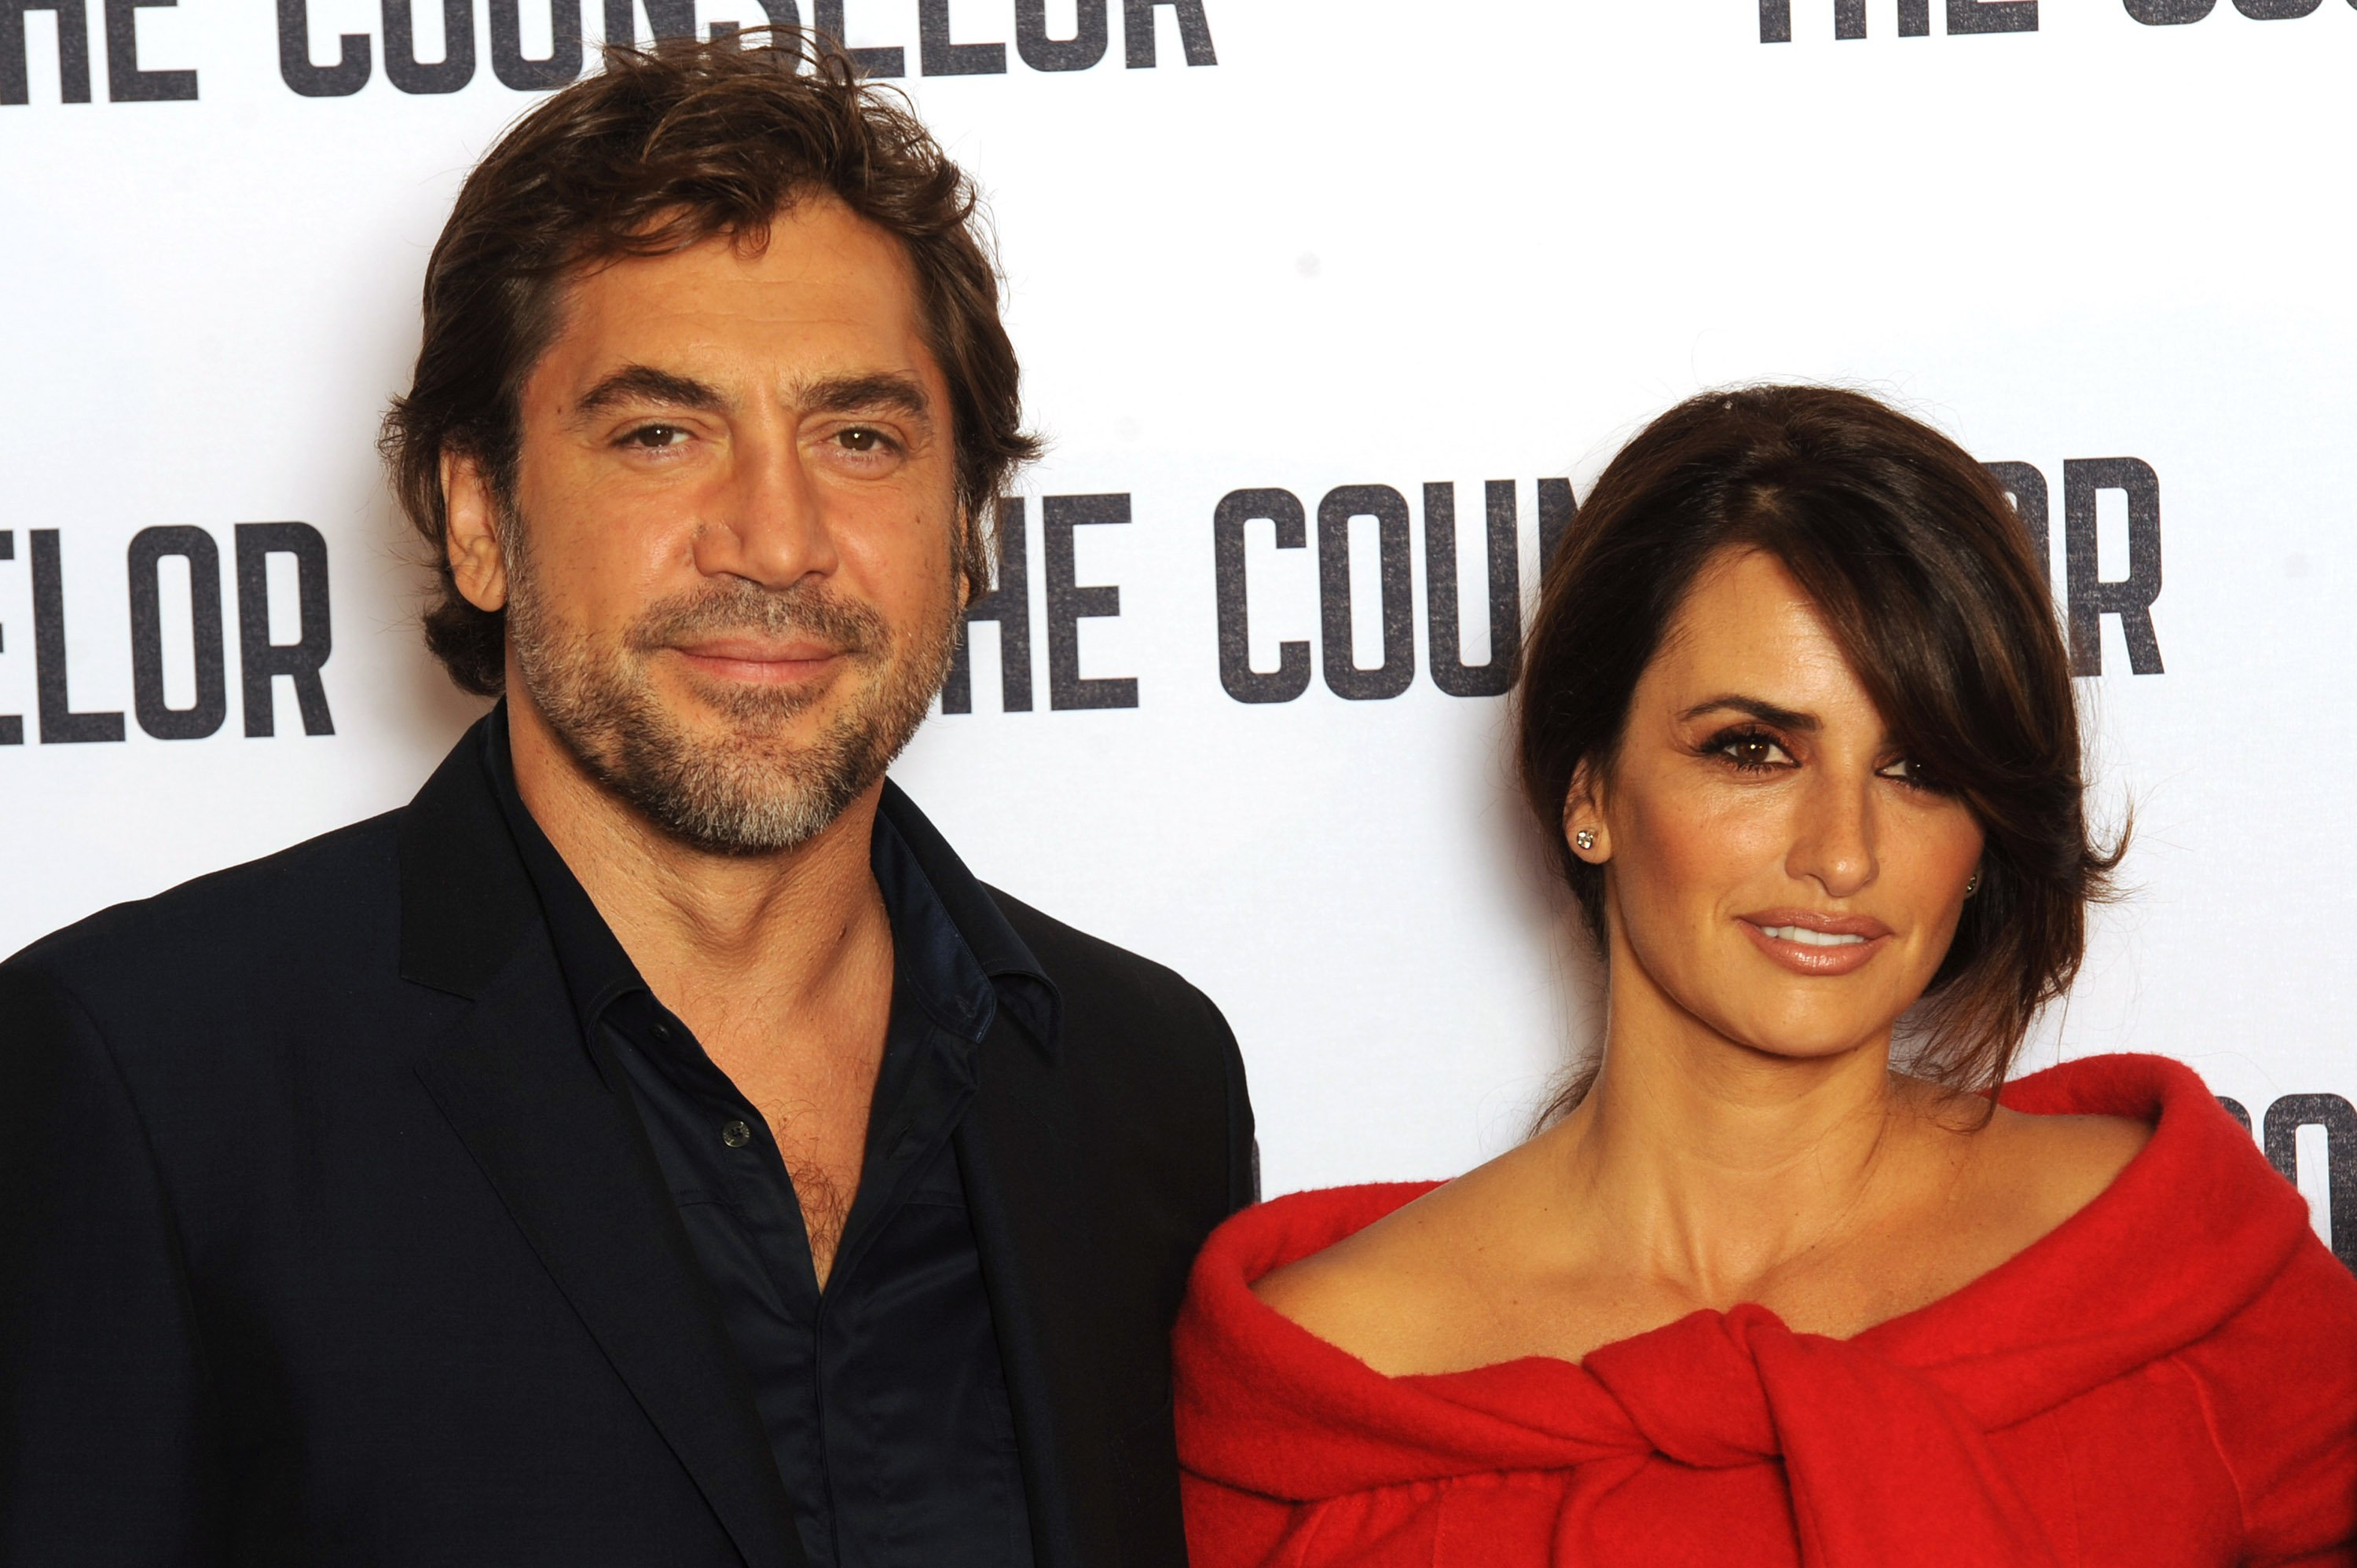 Image Credits: Getty Images / Dave J Hogan | Javier Bardem and Penelope Cruz attend a photocall for 'The Counselor' at The Dorchester on October 5, 2013 in London, England.